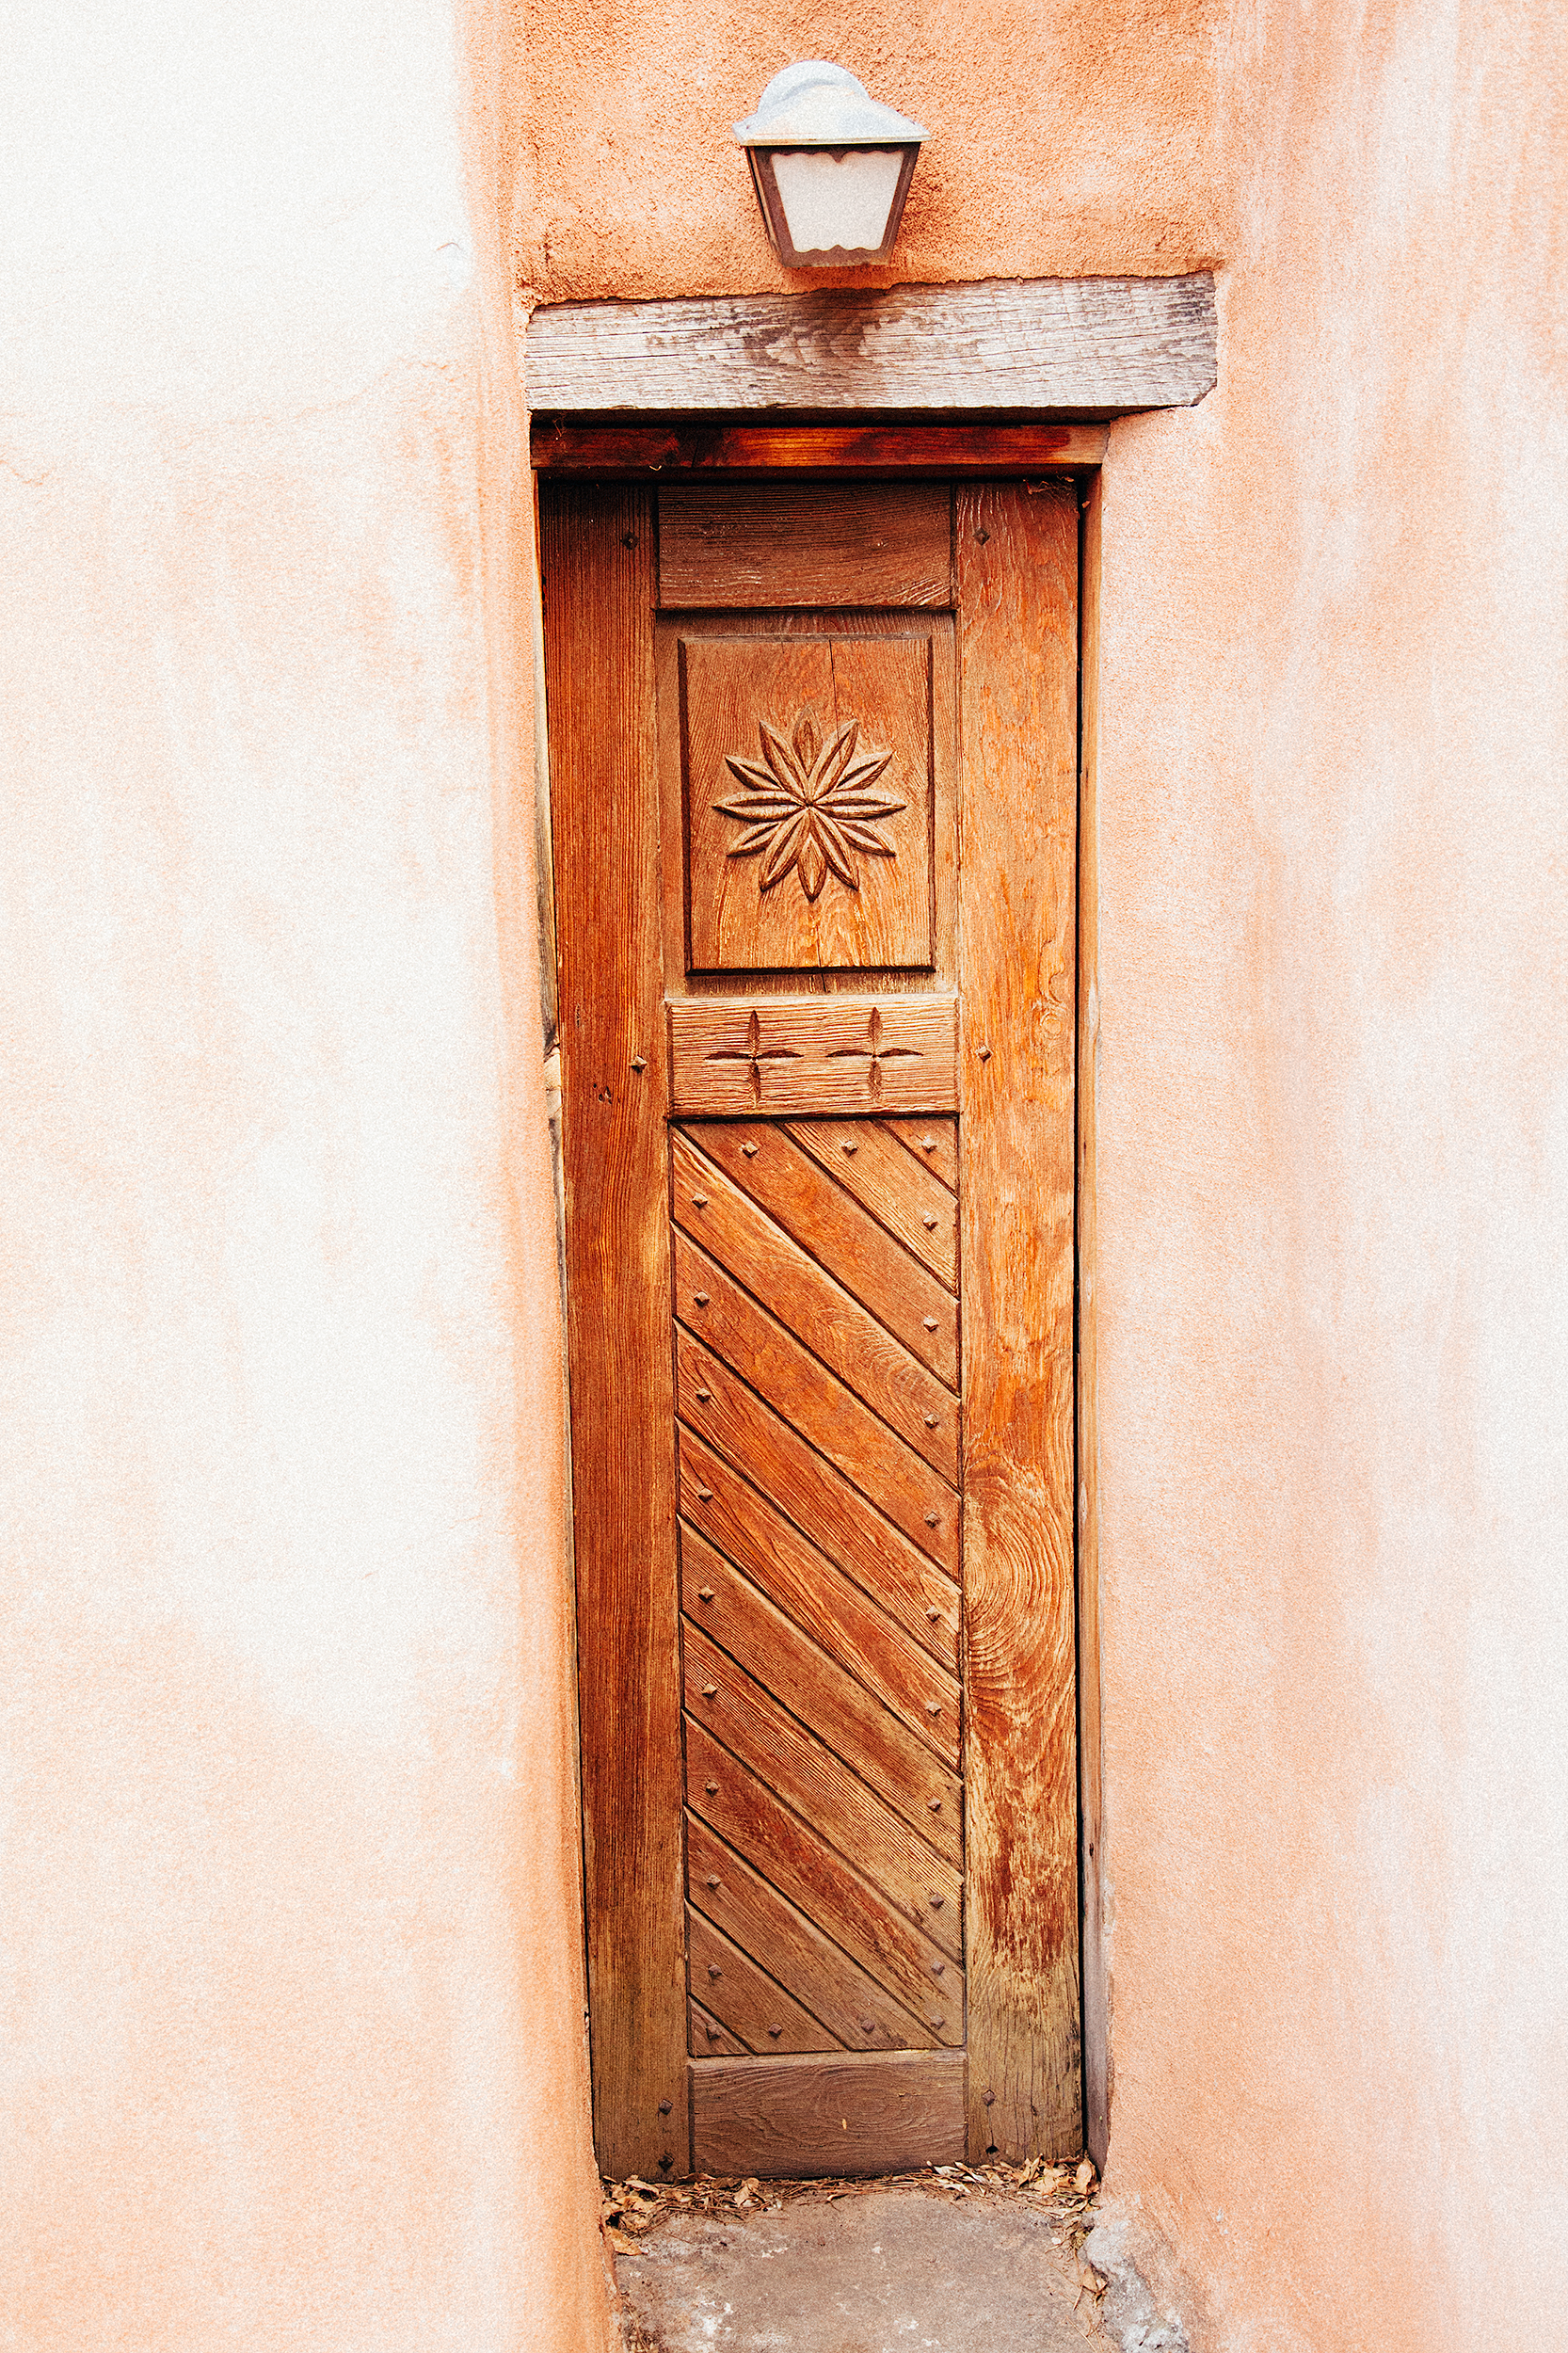 Door detail, Old Town Albuquerque